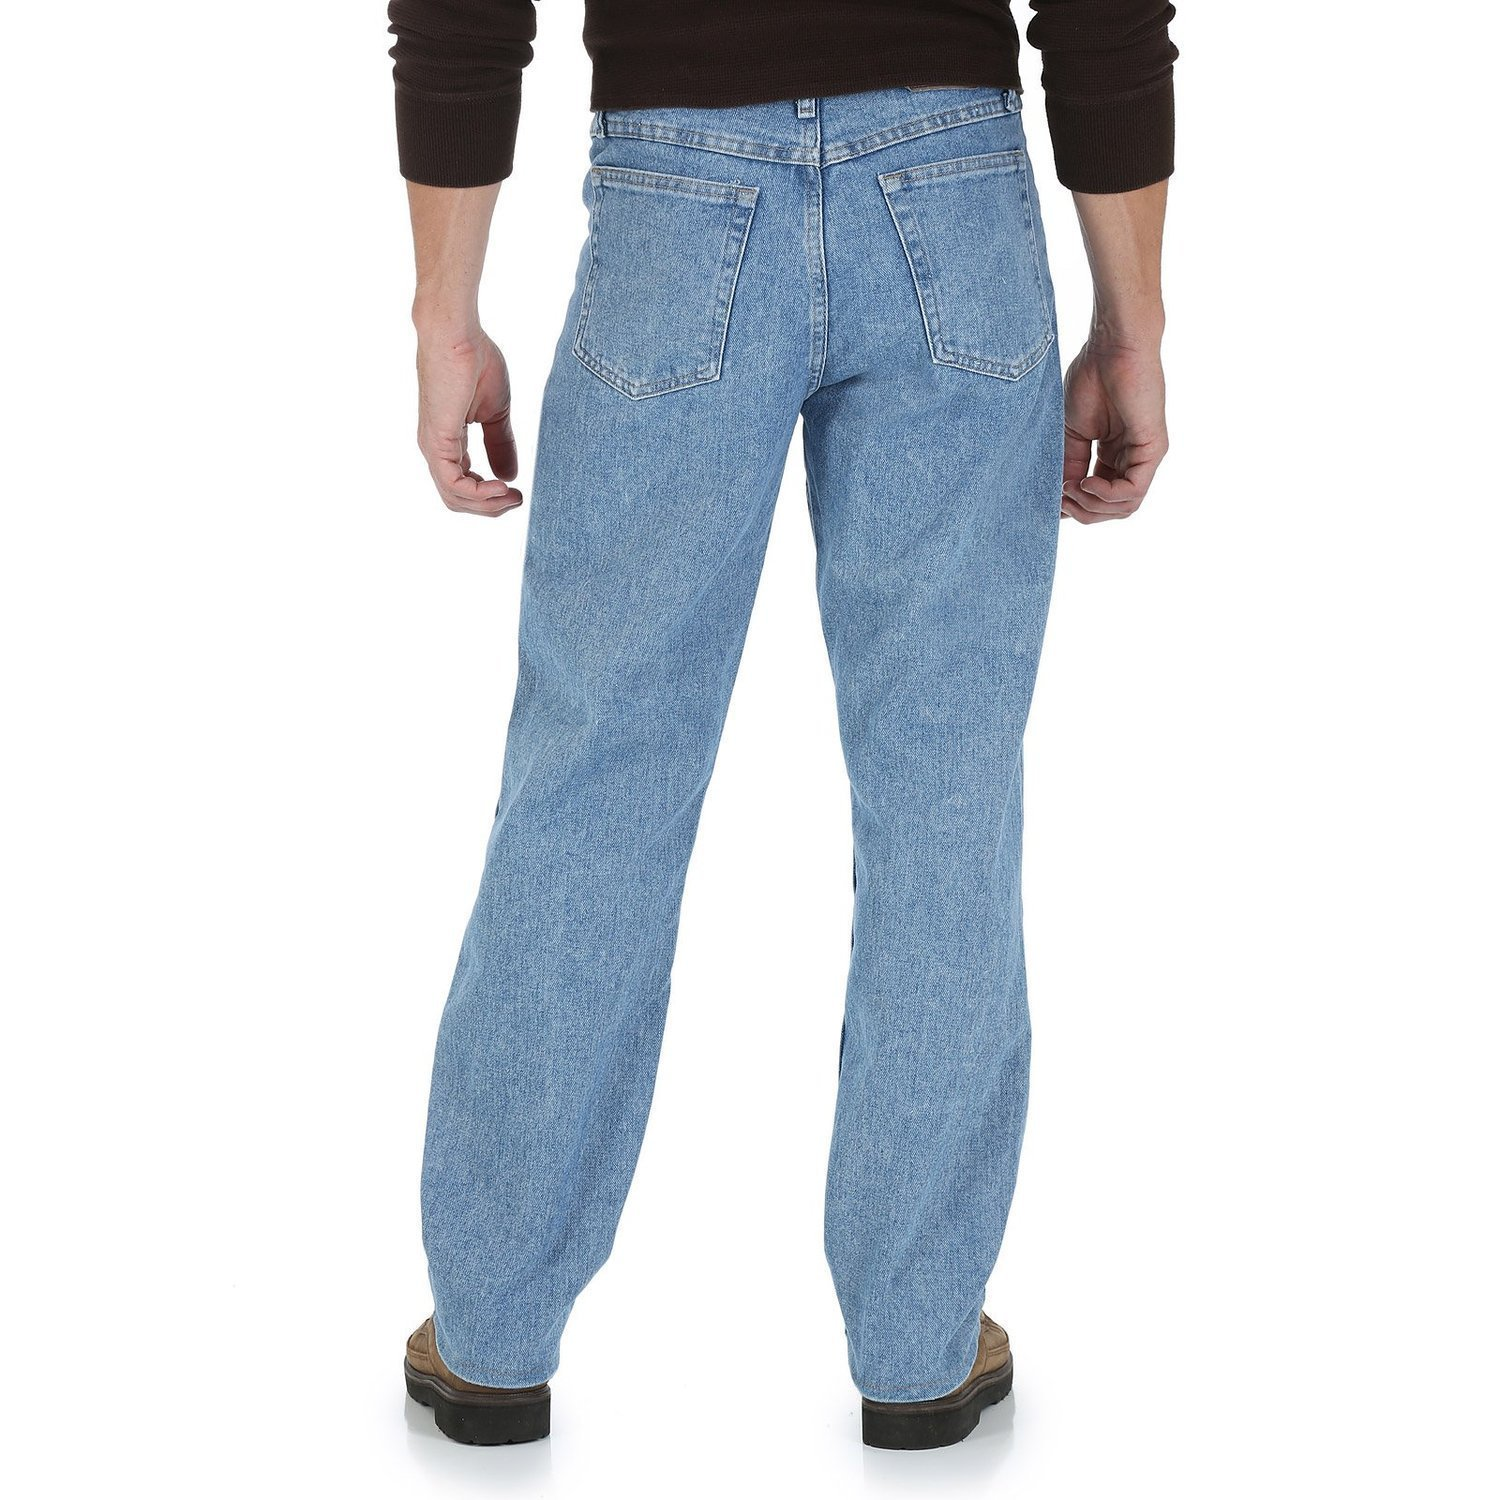 e9af8d83 Wrangler Men's 5-Star Relaxed Fit Jeans at Amazon Men's Clothing store: